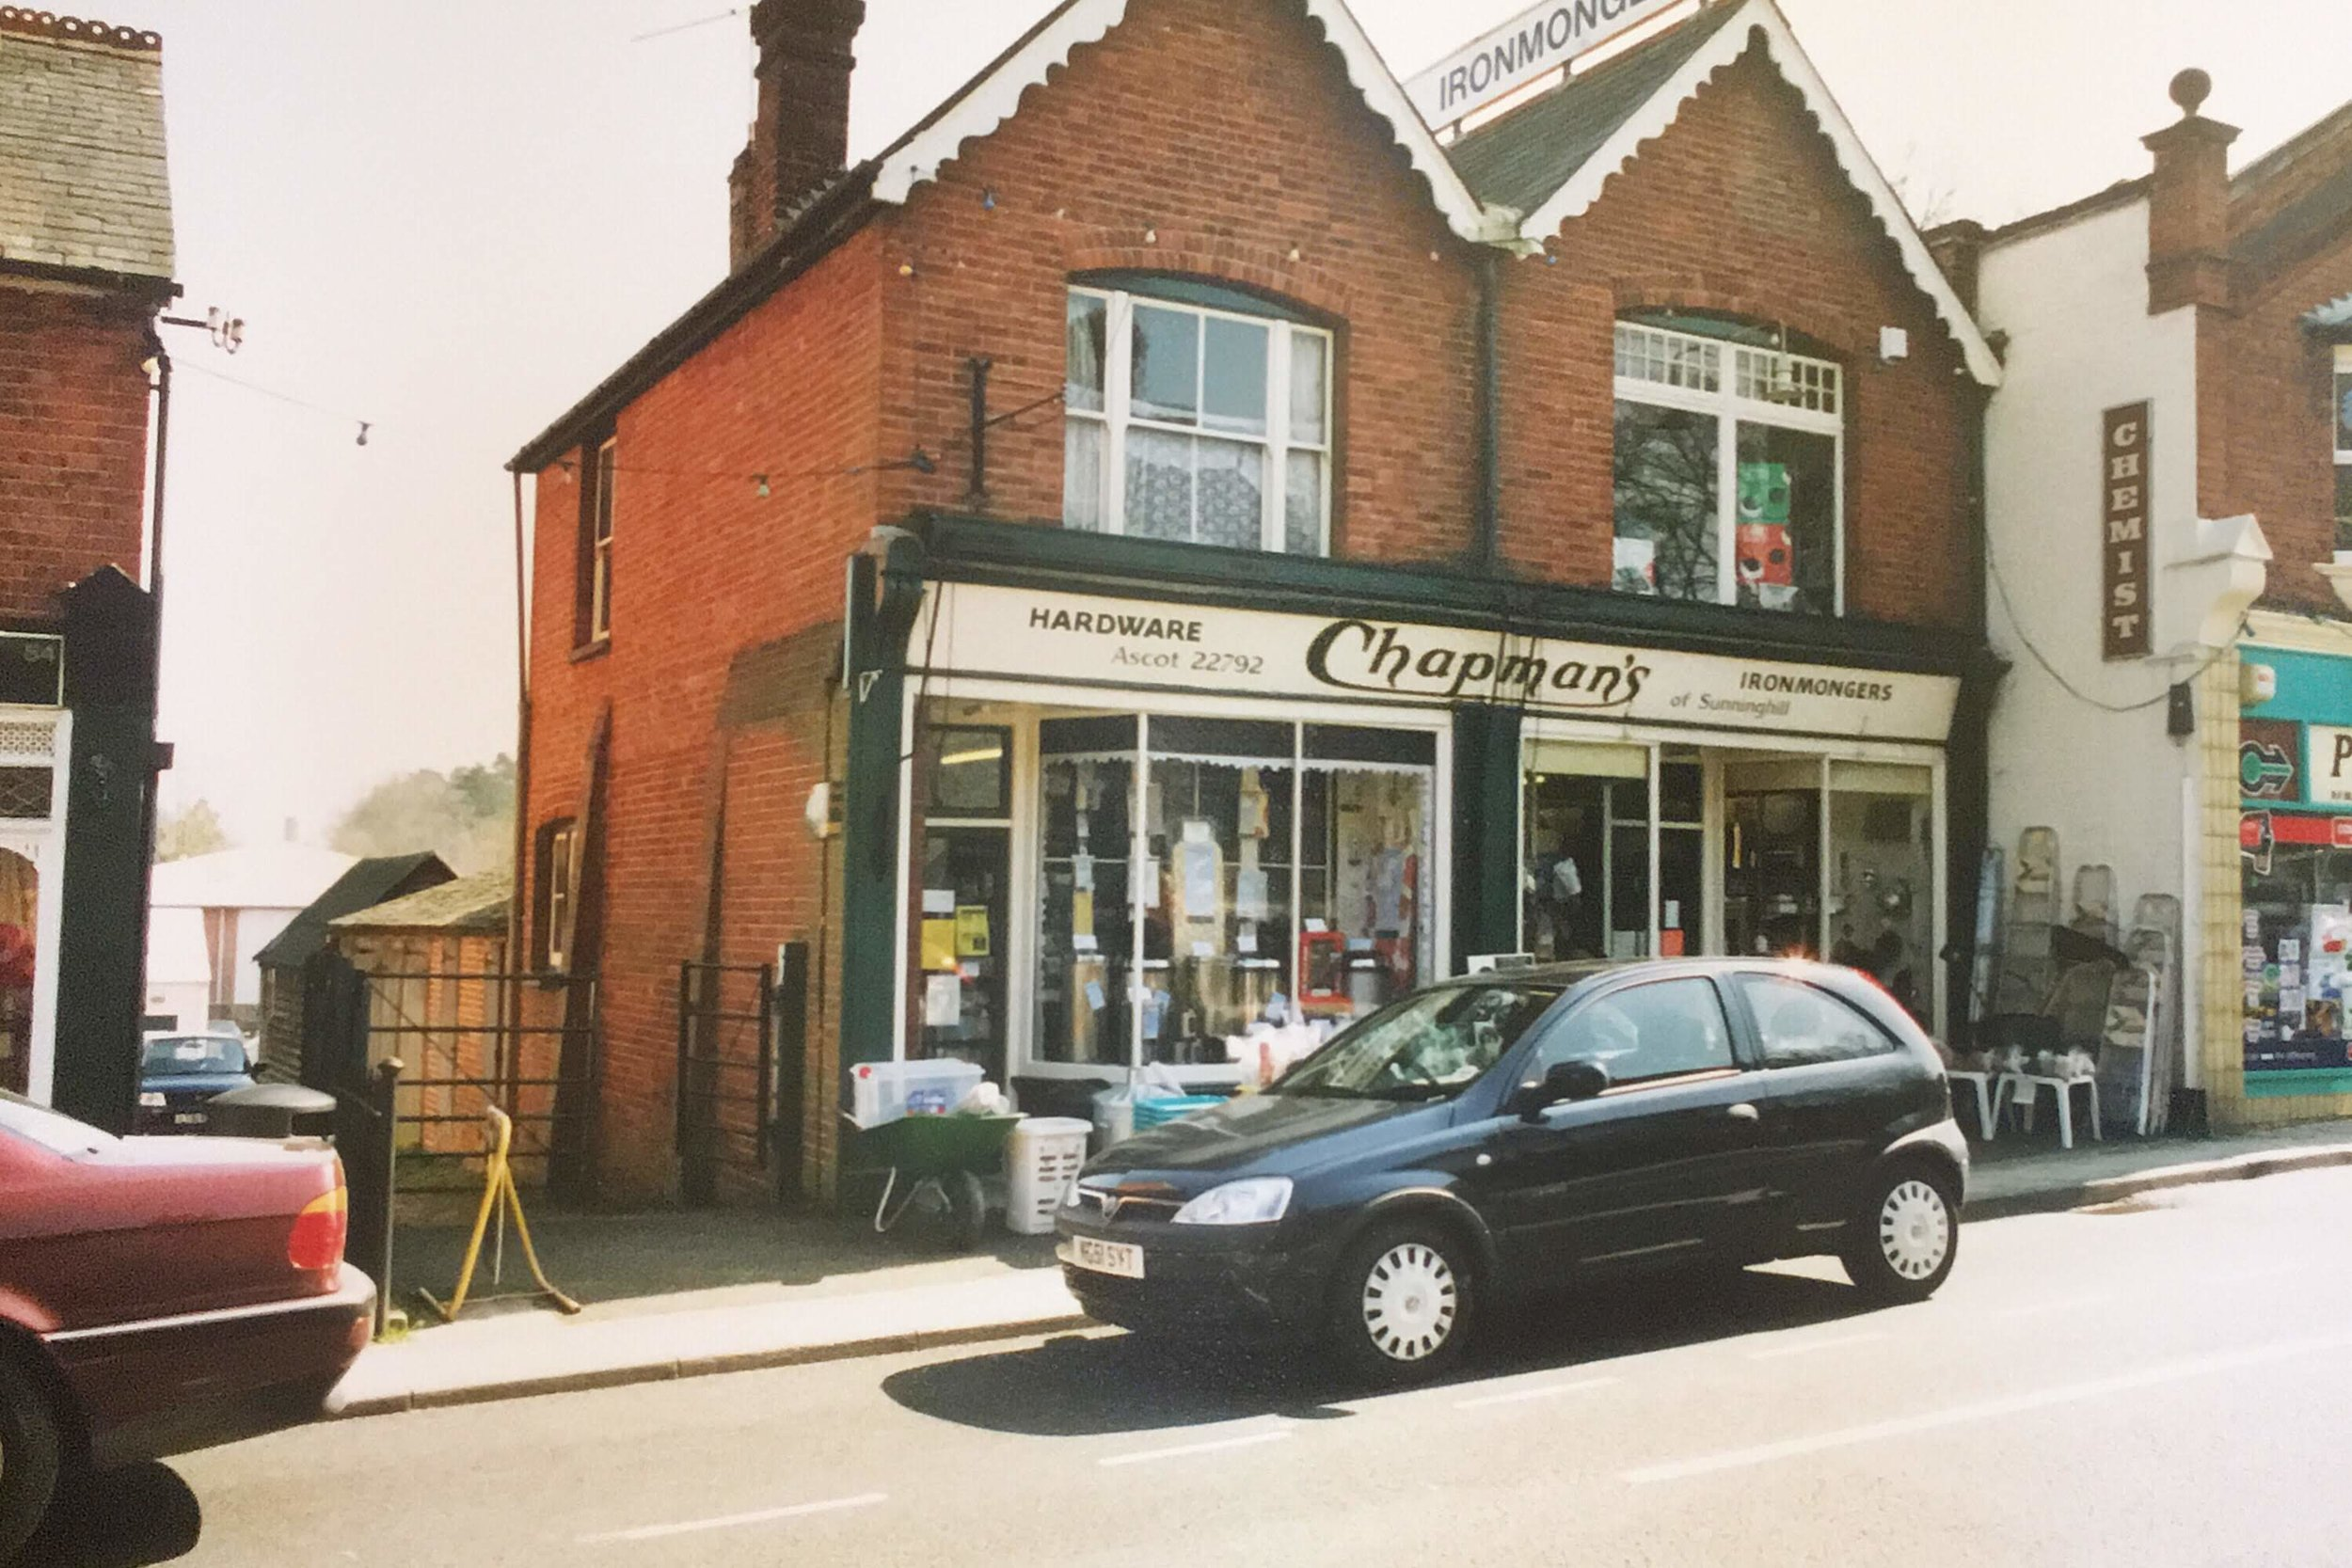 Chapmans frontage before the redevelopment